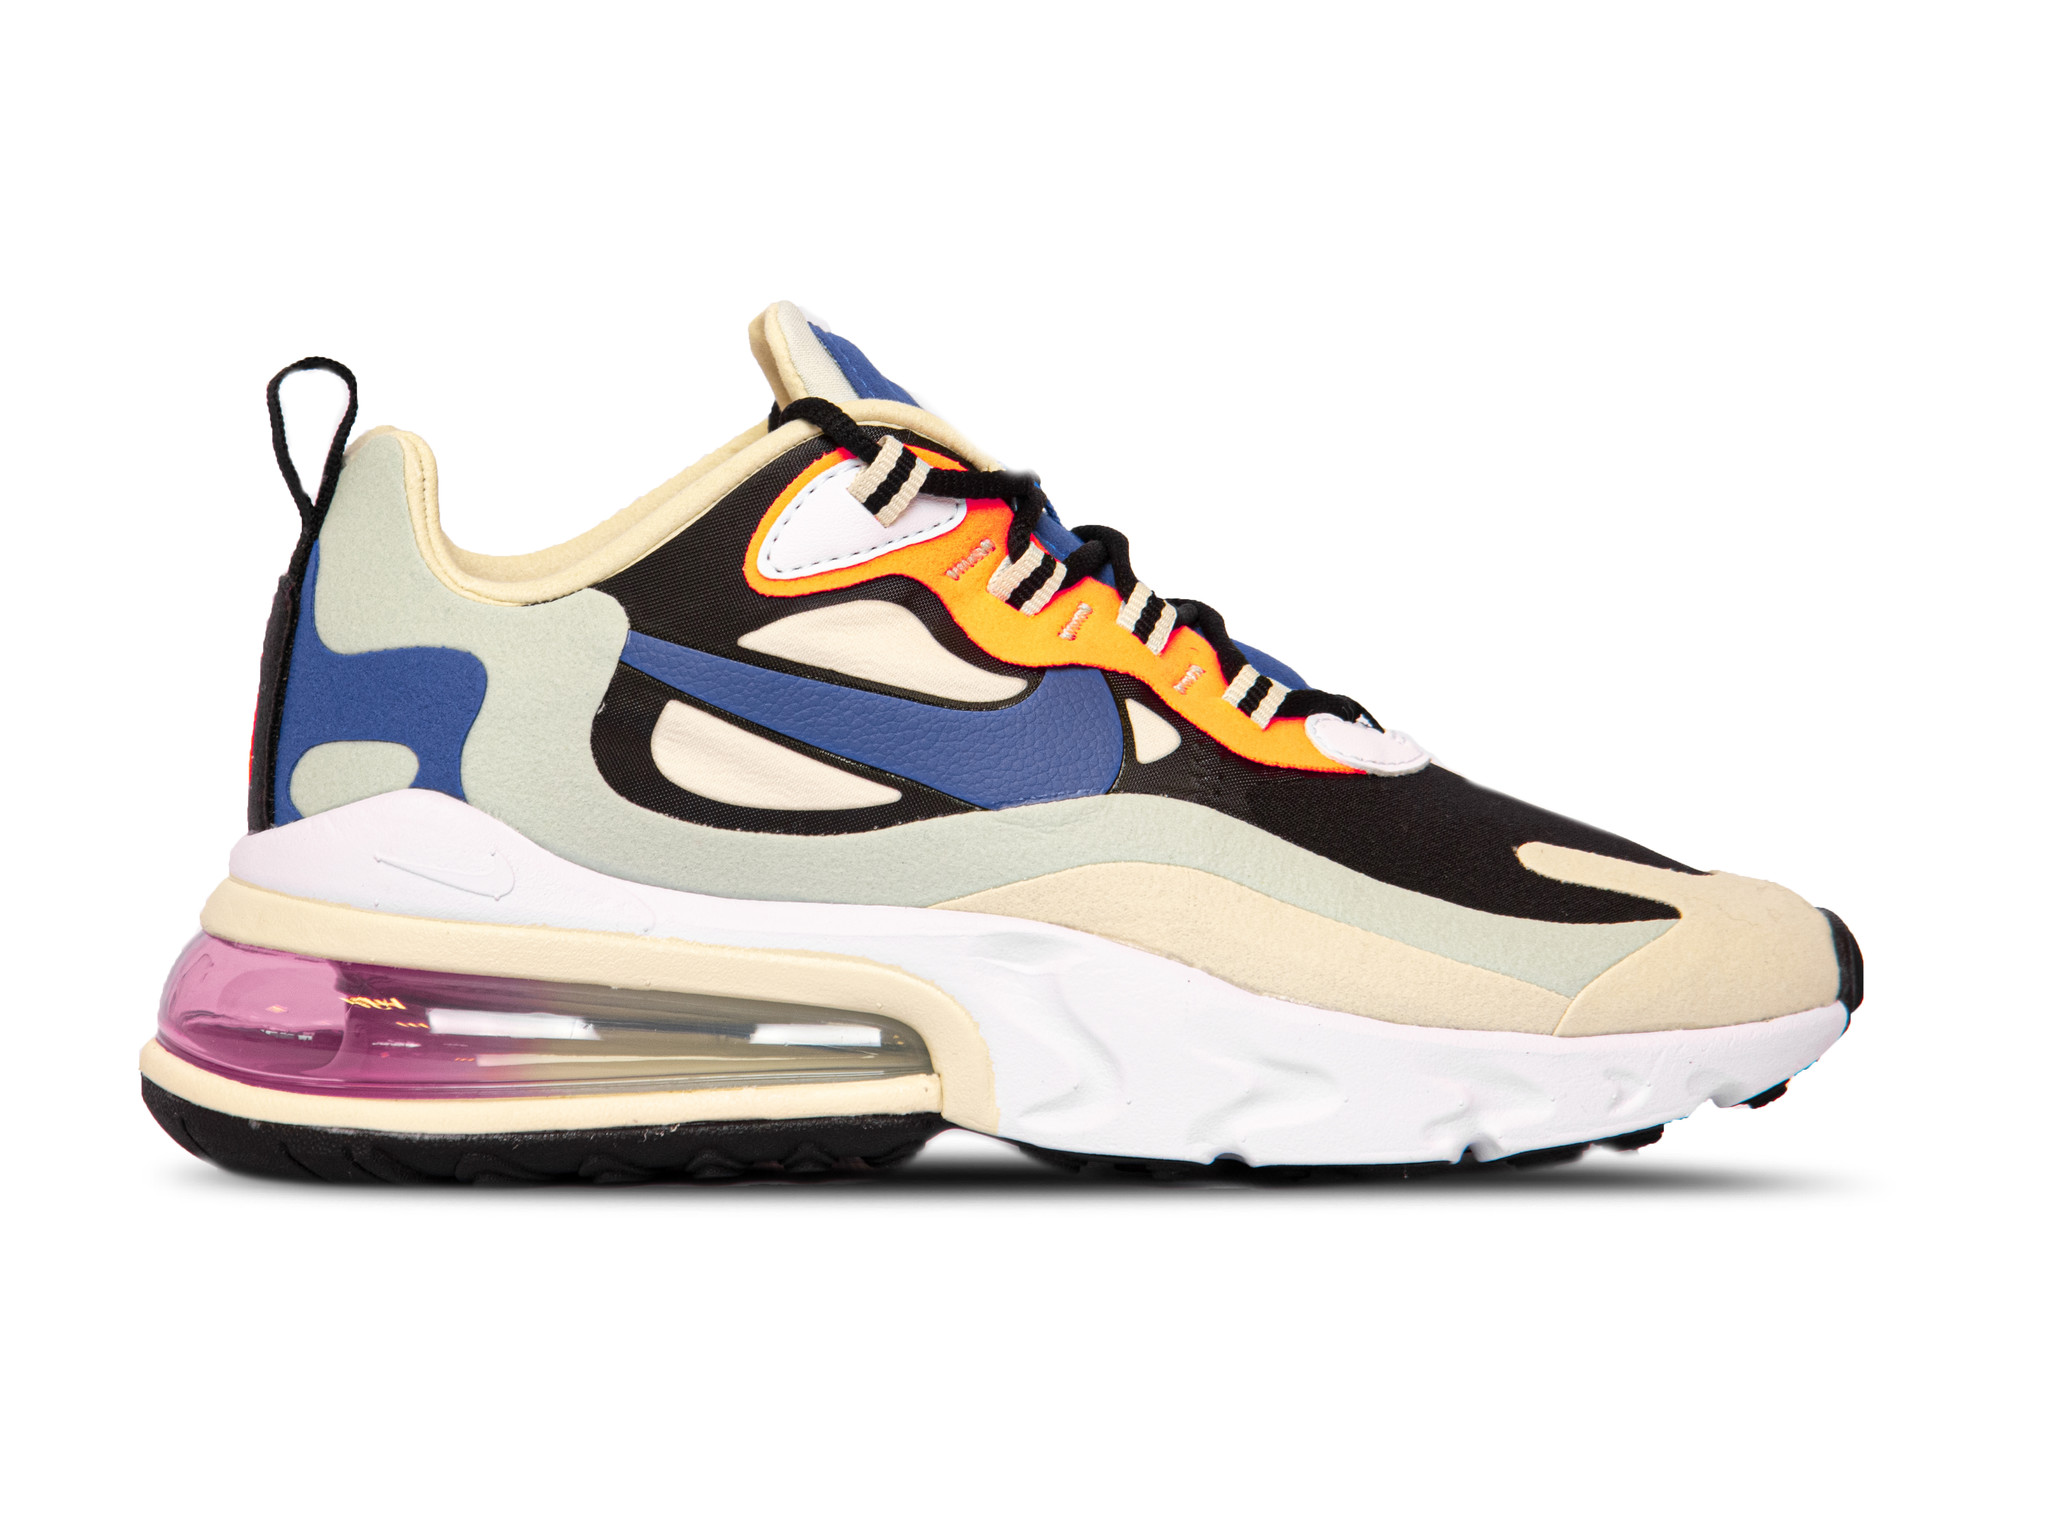 Air Max 270 React Fossil Hyper Blue Black CI3899 200